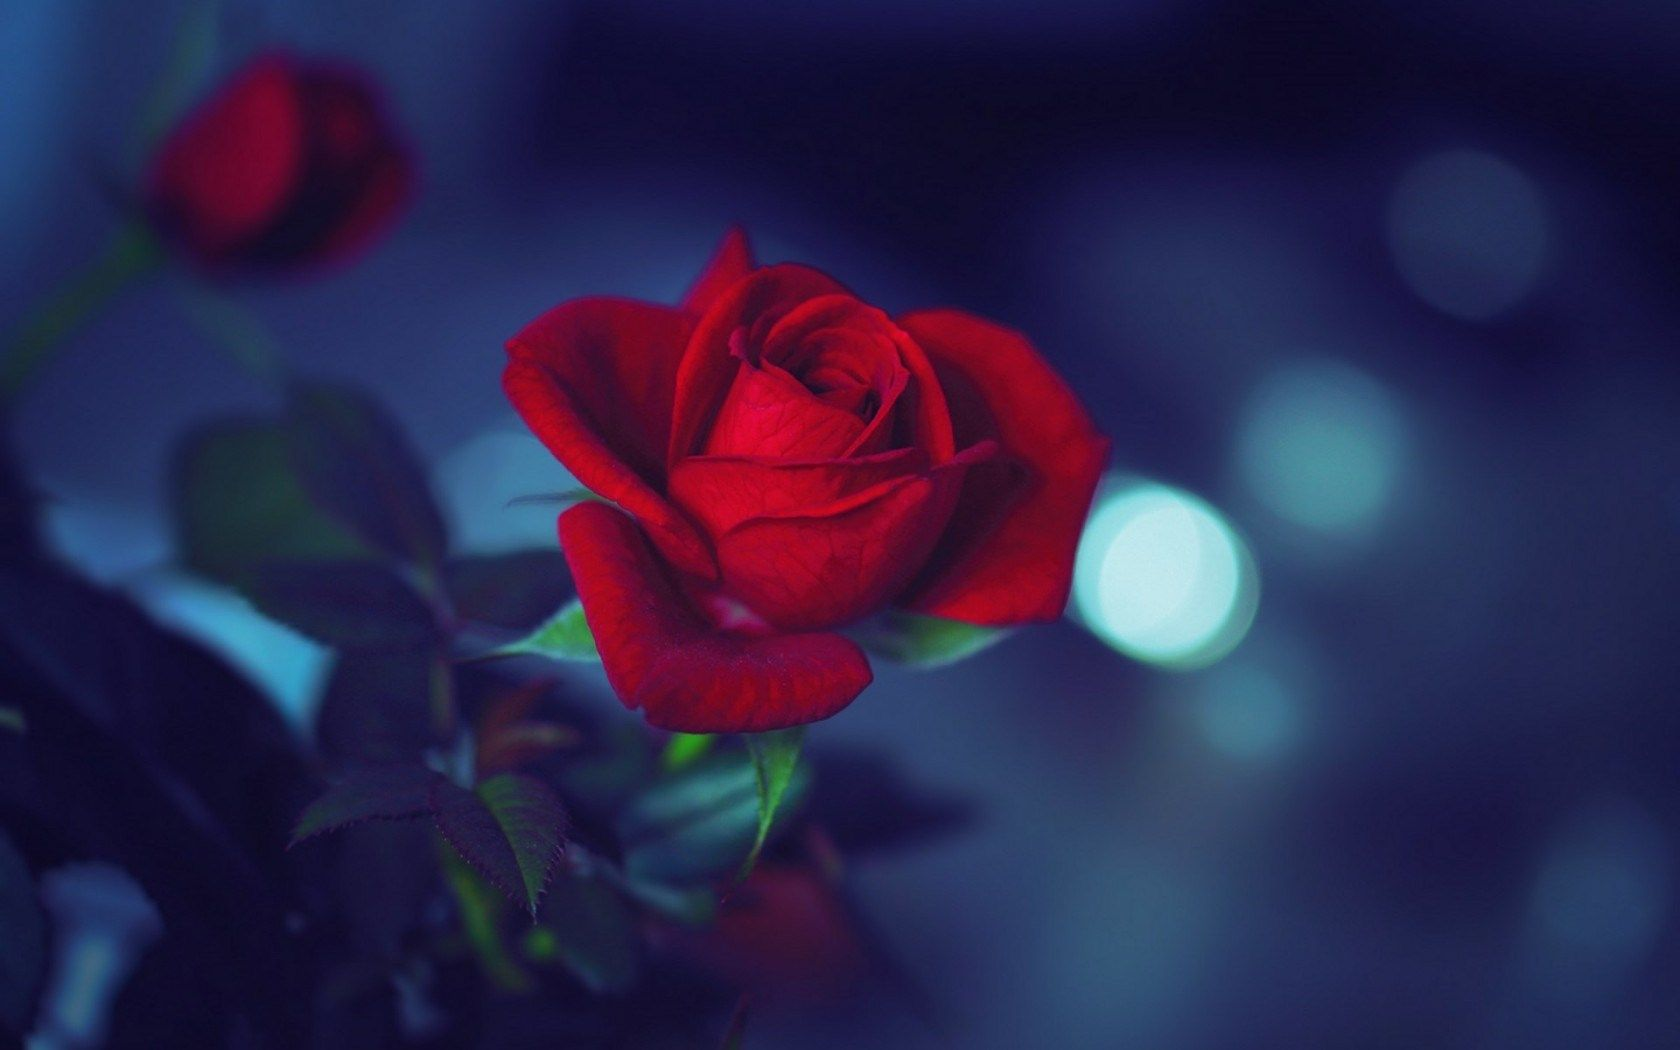 Night flower wallpaper google searchstarwallpapers roses night flower wallpaper google searchstarwallpapers izmirmasajfo